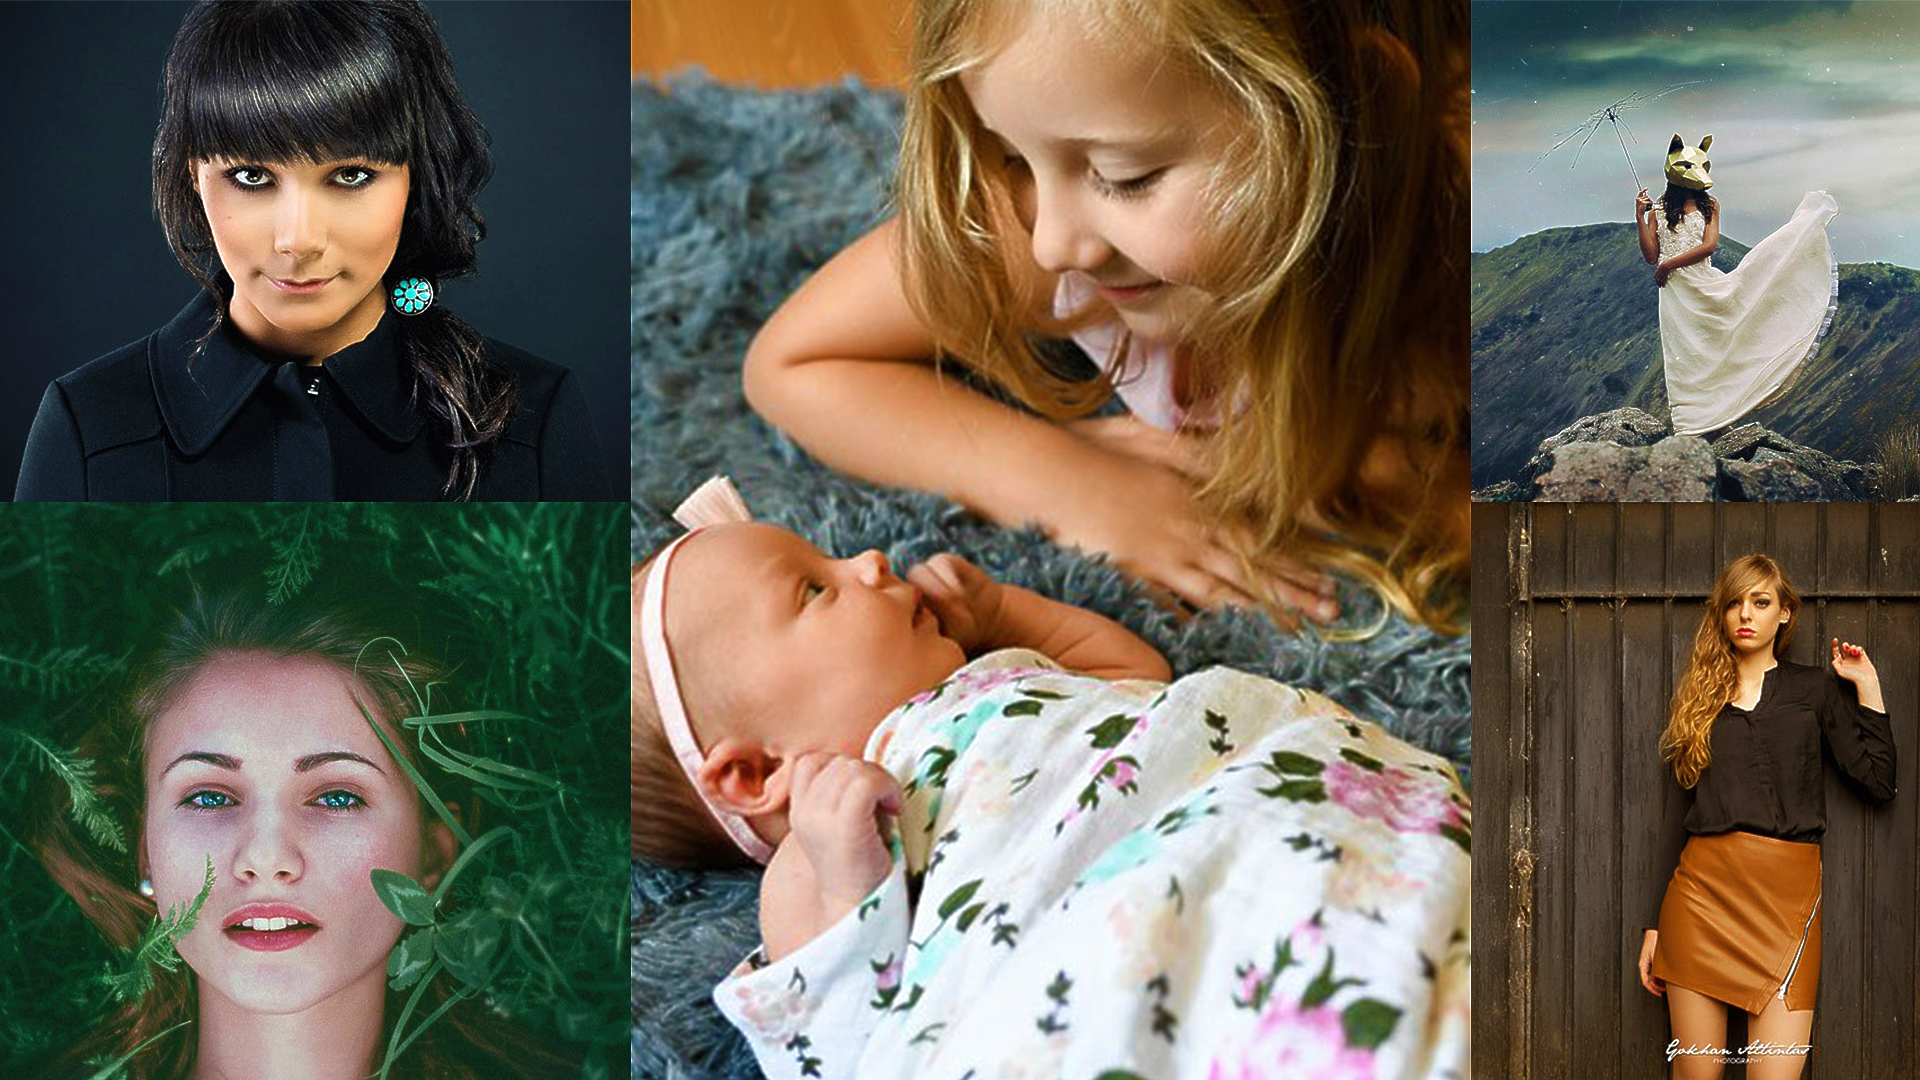 The 10 Different Types of Portrait Photography You Should Know